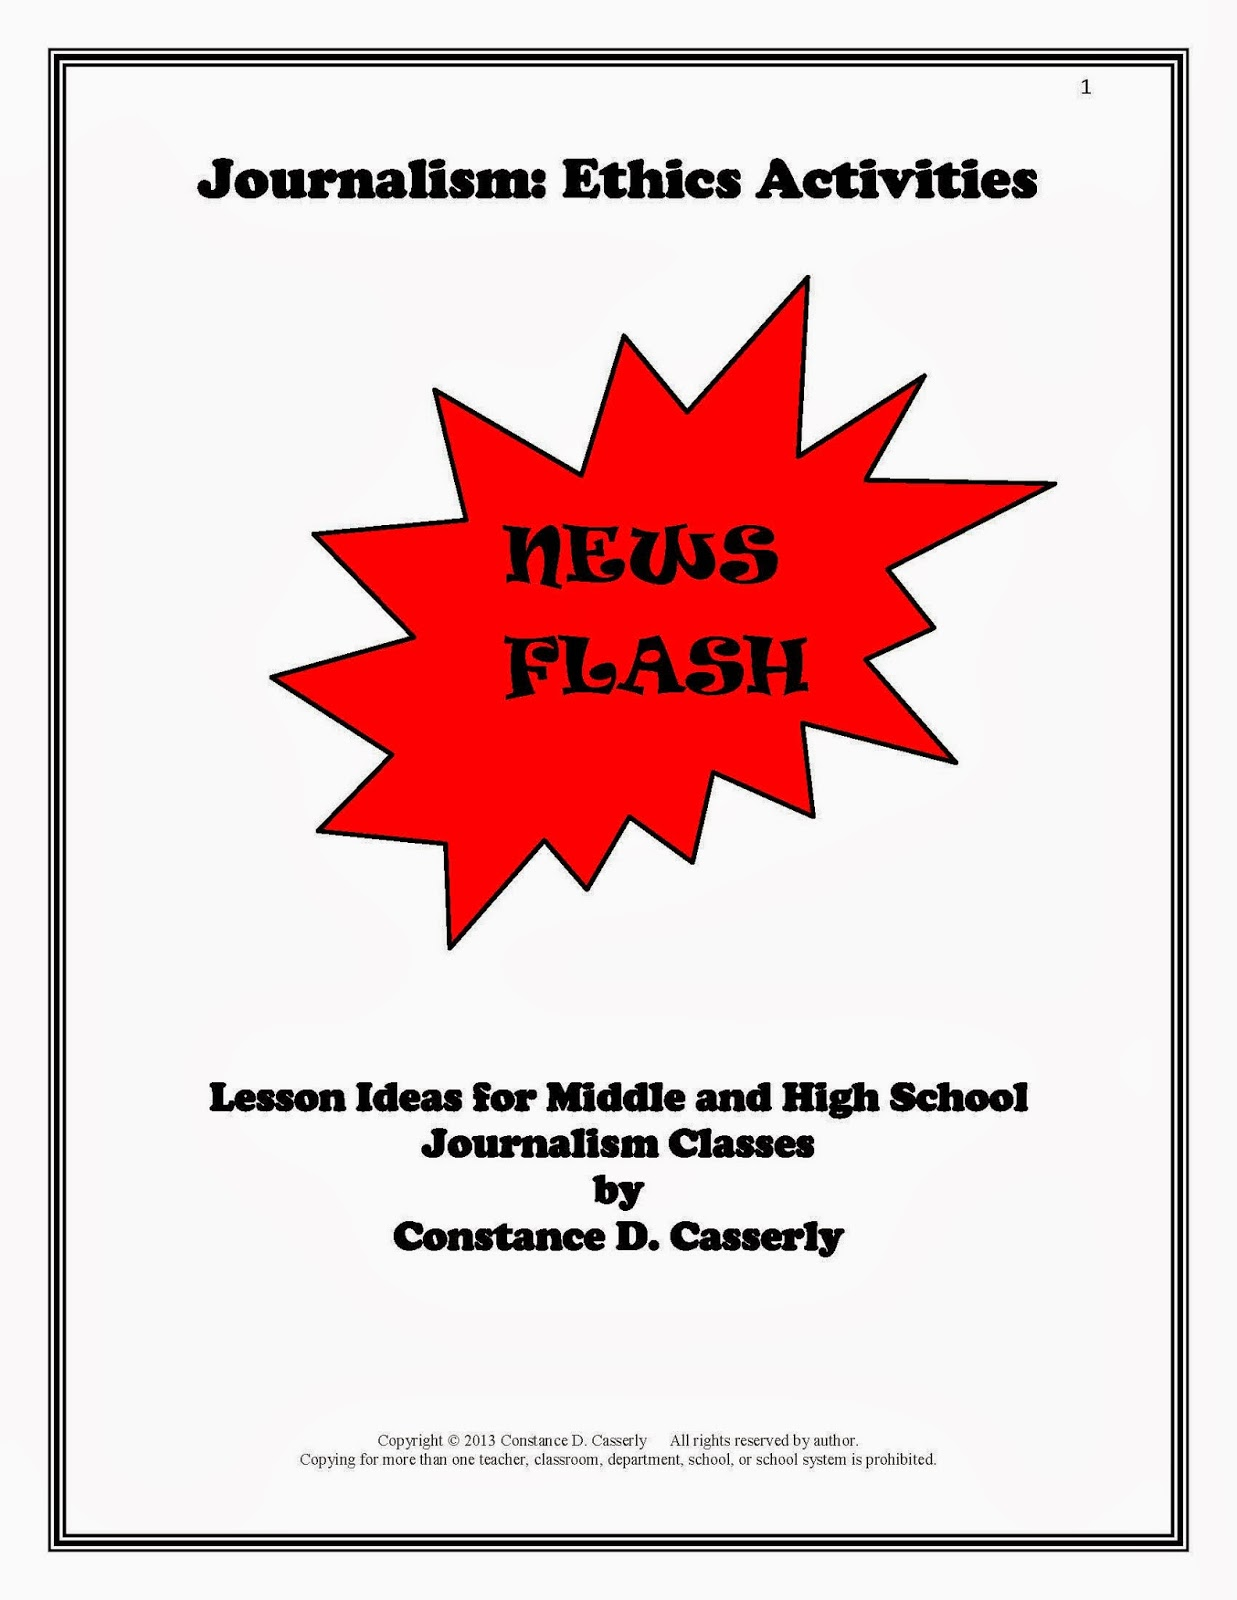 Middle School and High School Journalism Lessons